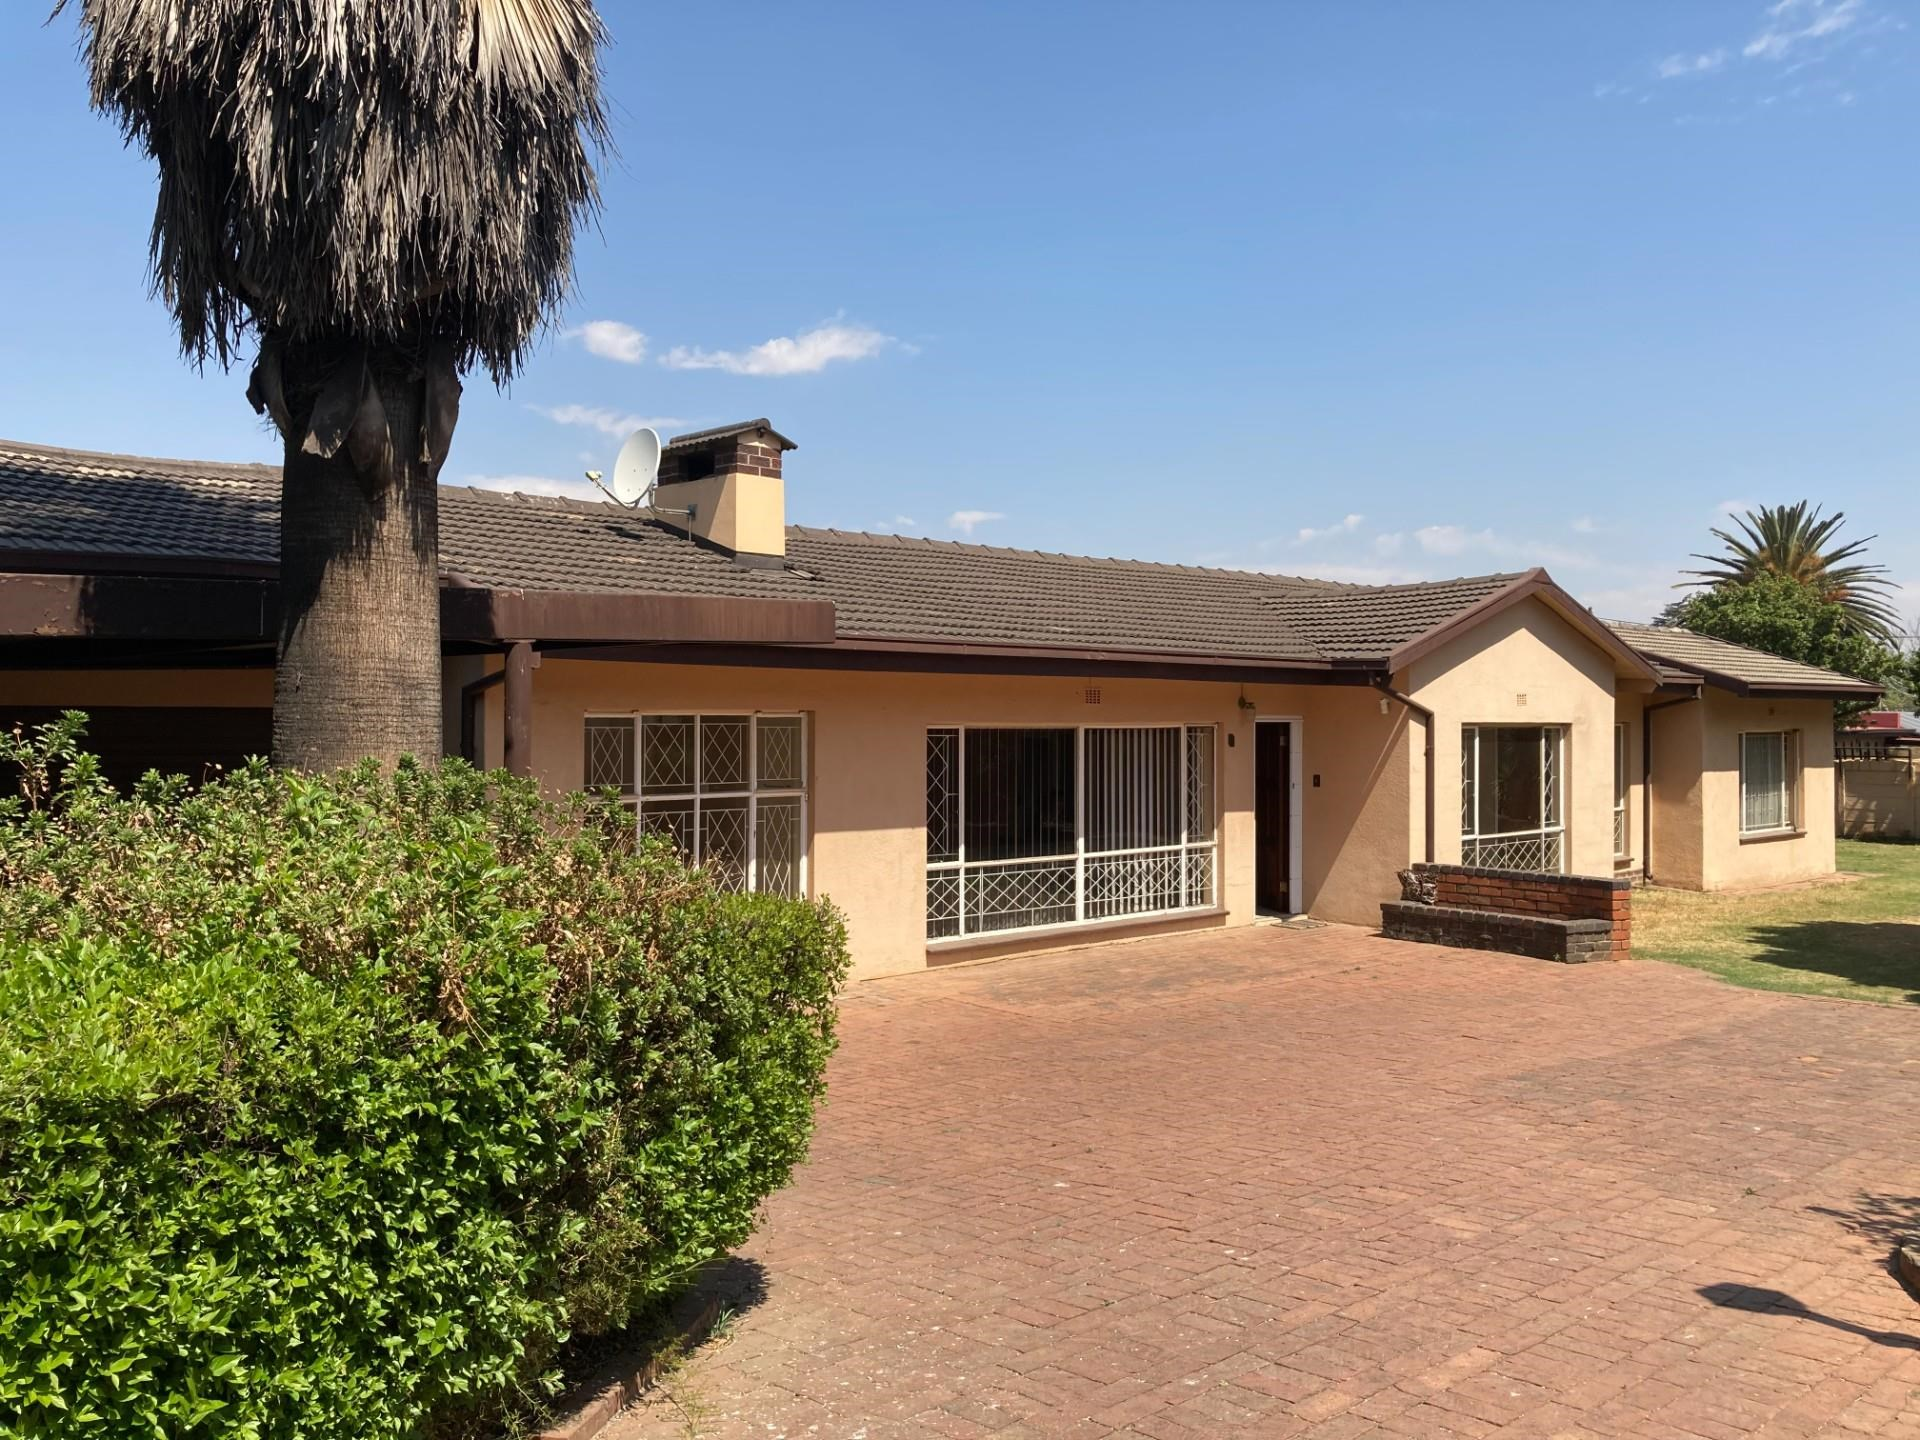 4 Bedroom House for Sale in Eastleigh